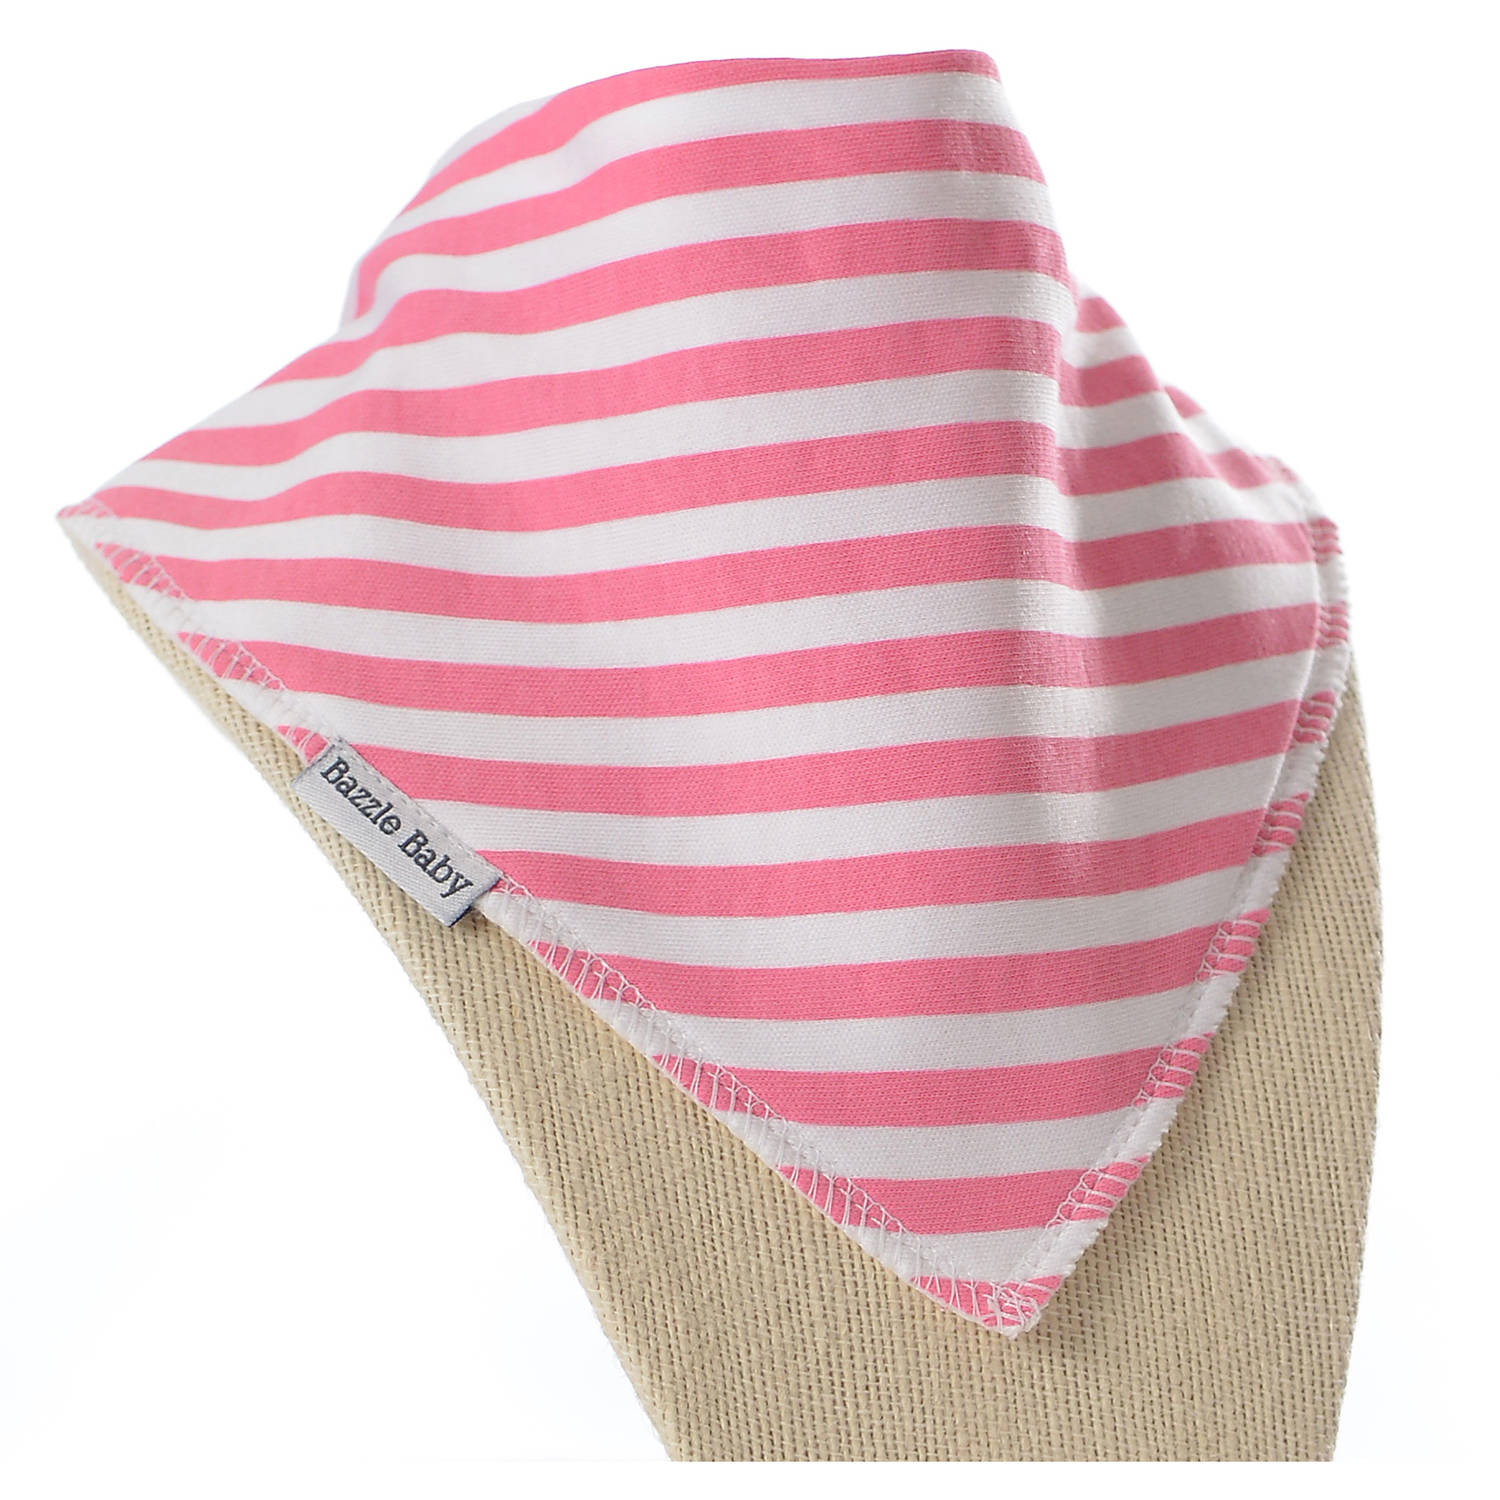 Bazzle Baby Newborn Toddler Pretty Pink Stripe Banda Bib